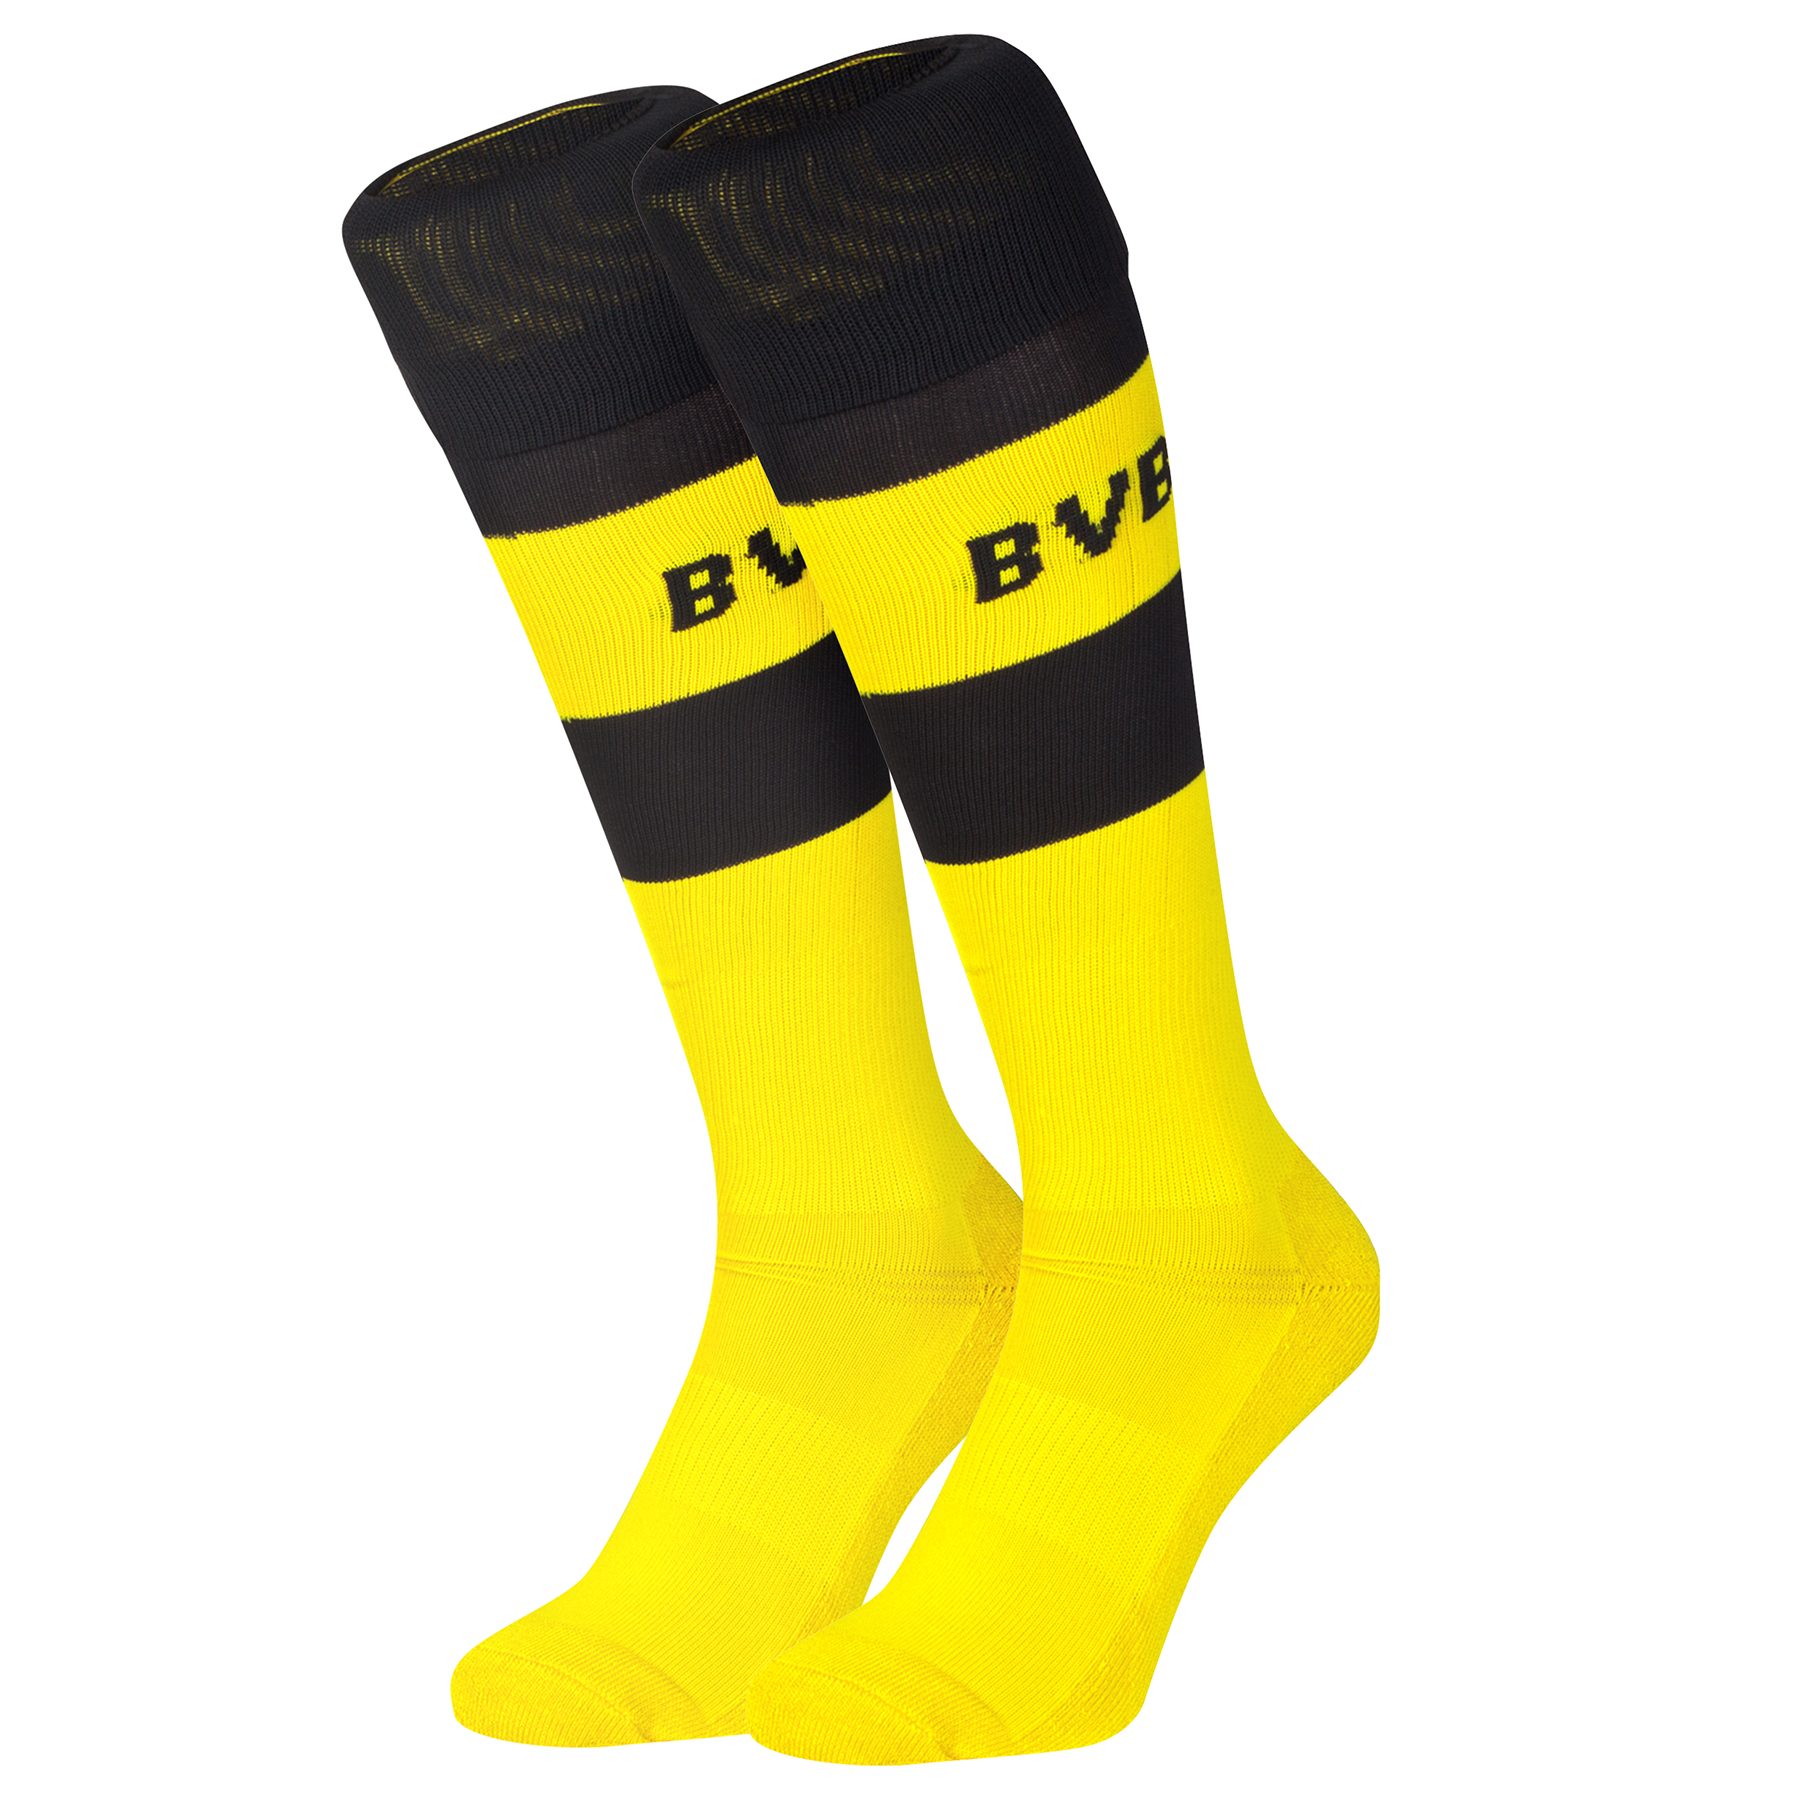 BVB Home Socks 2015/16 Yellow